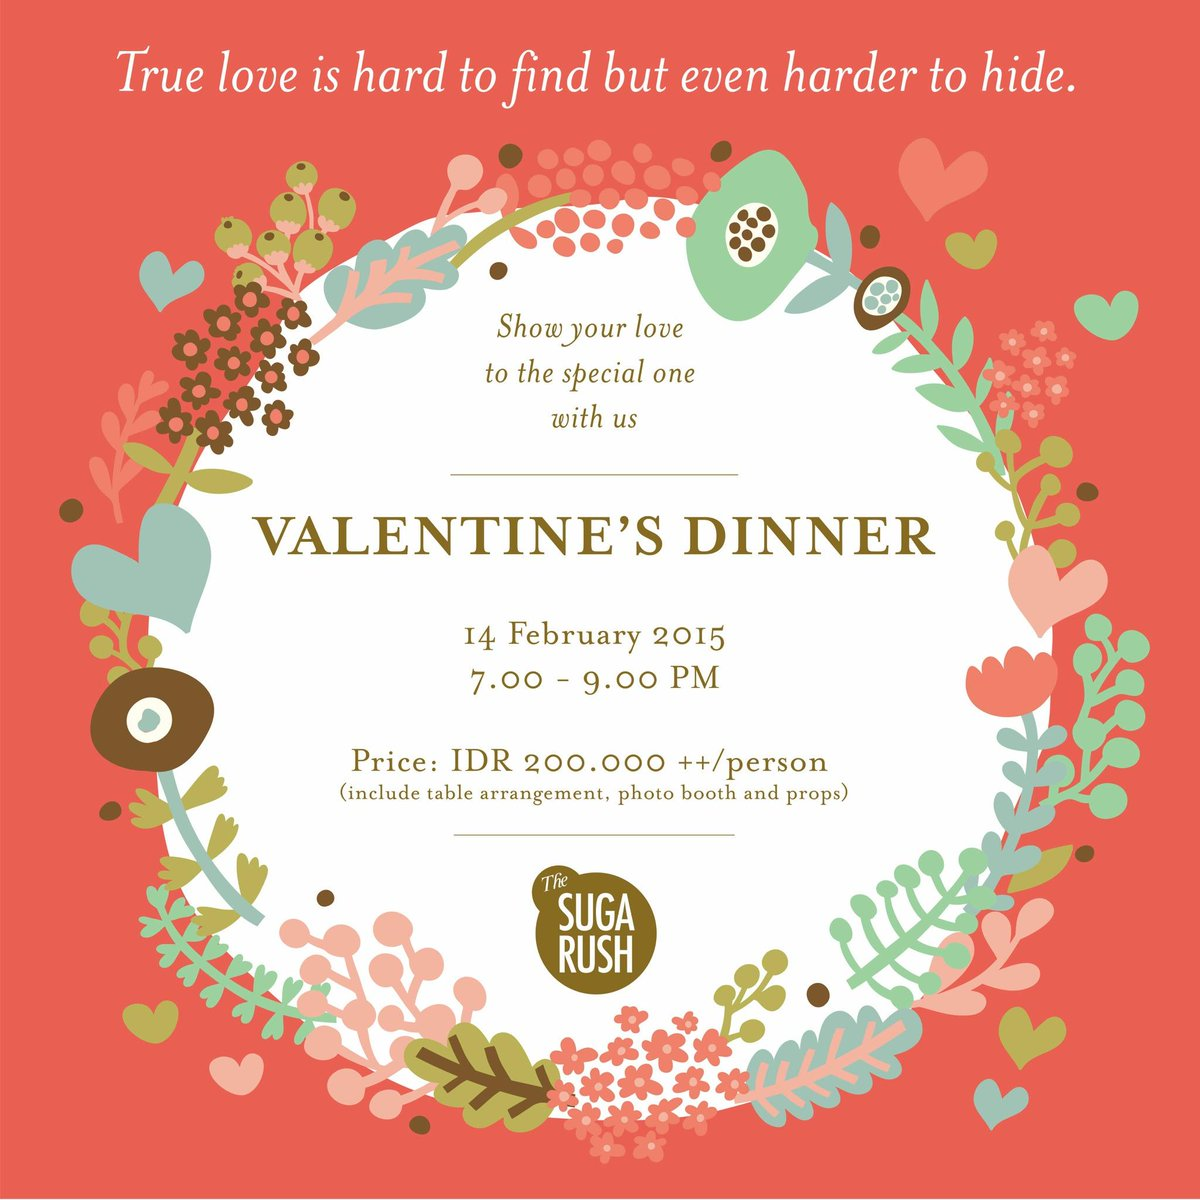 Makan malam spesial, private table, dll? #ValentinePackage by @Sugarush_bdg. 14 Feb, 7-9PM. RSVP 022-4236618 http://t.co/nWNTWUK98U